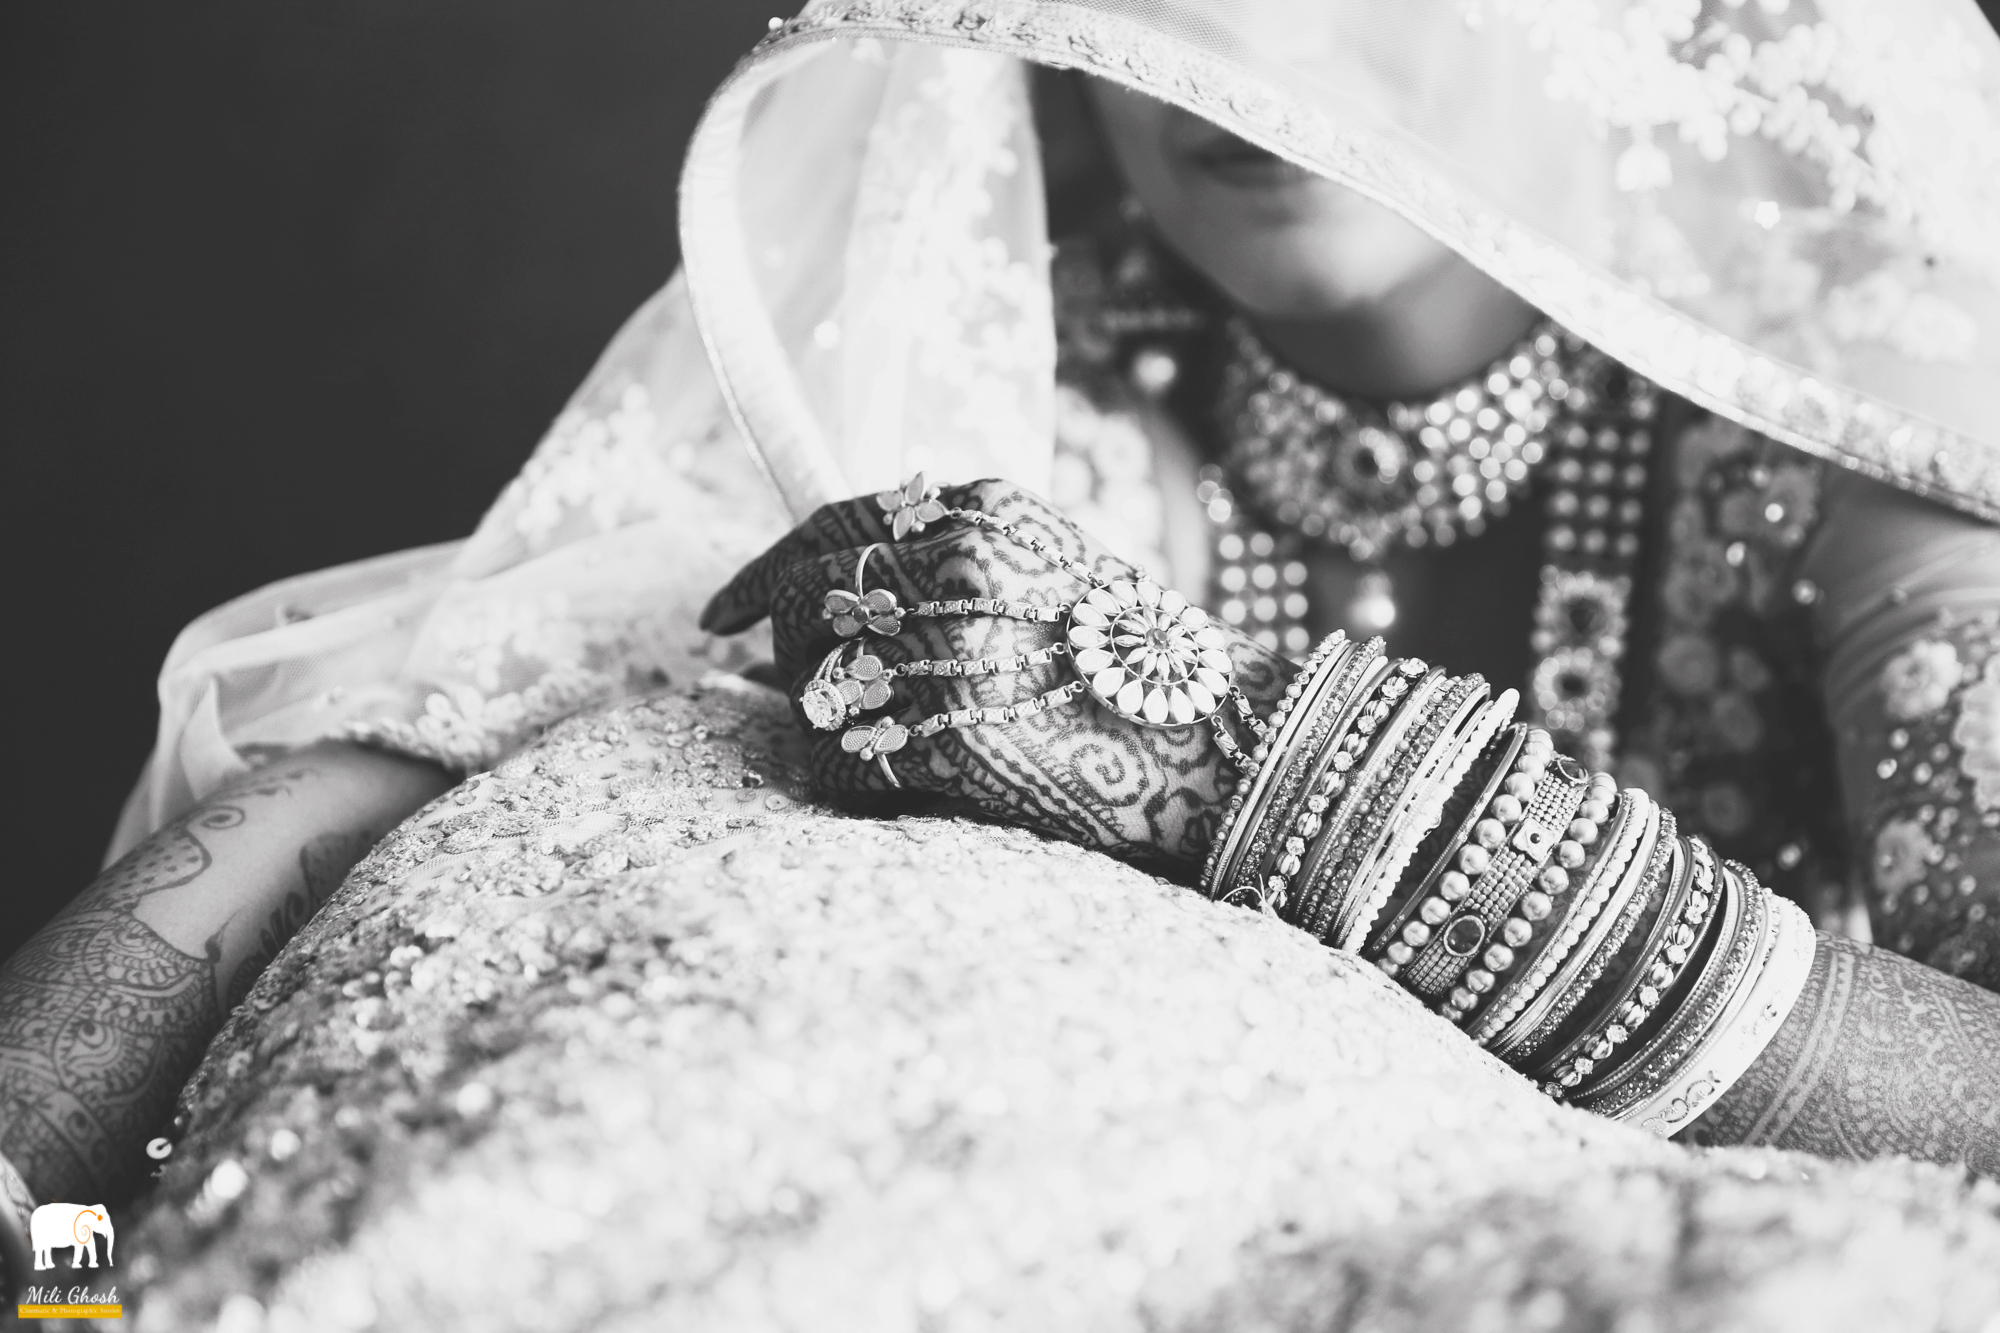 Copy of BW INDIAN BRIDE'S HANDS